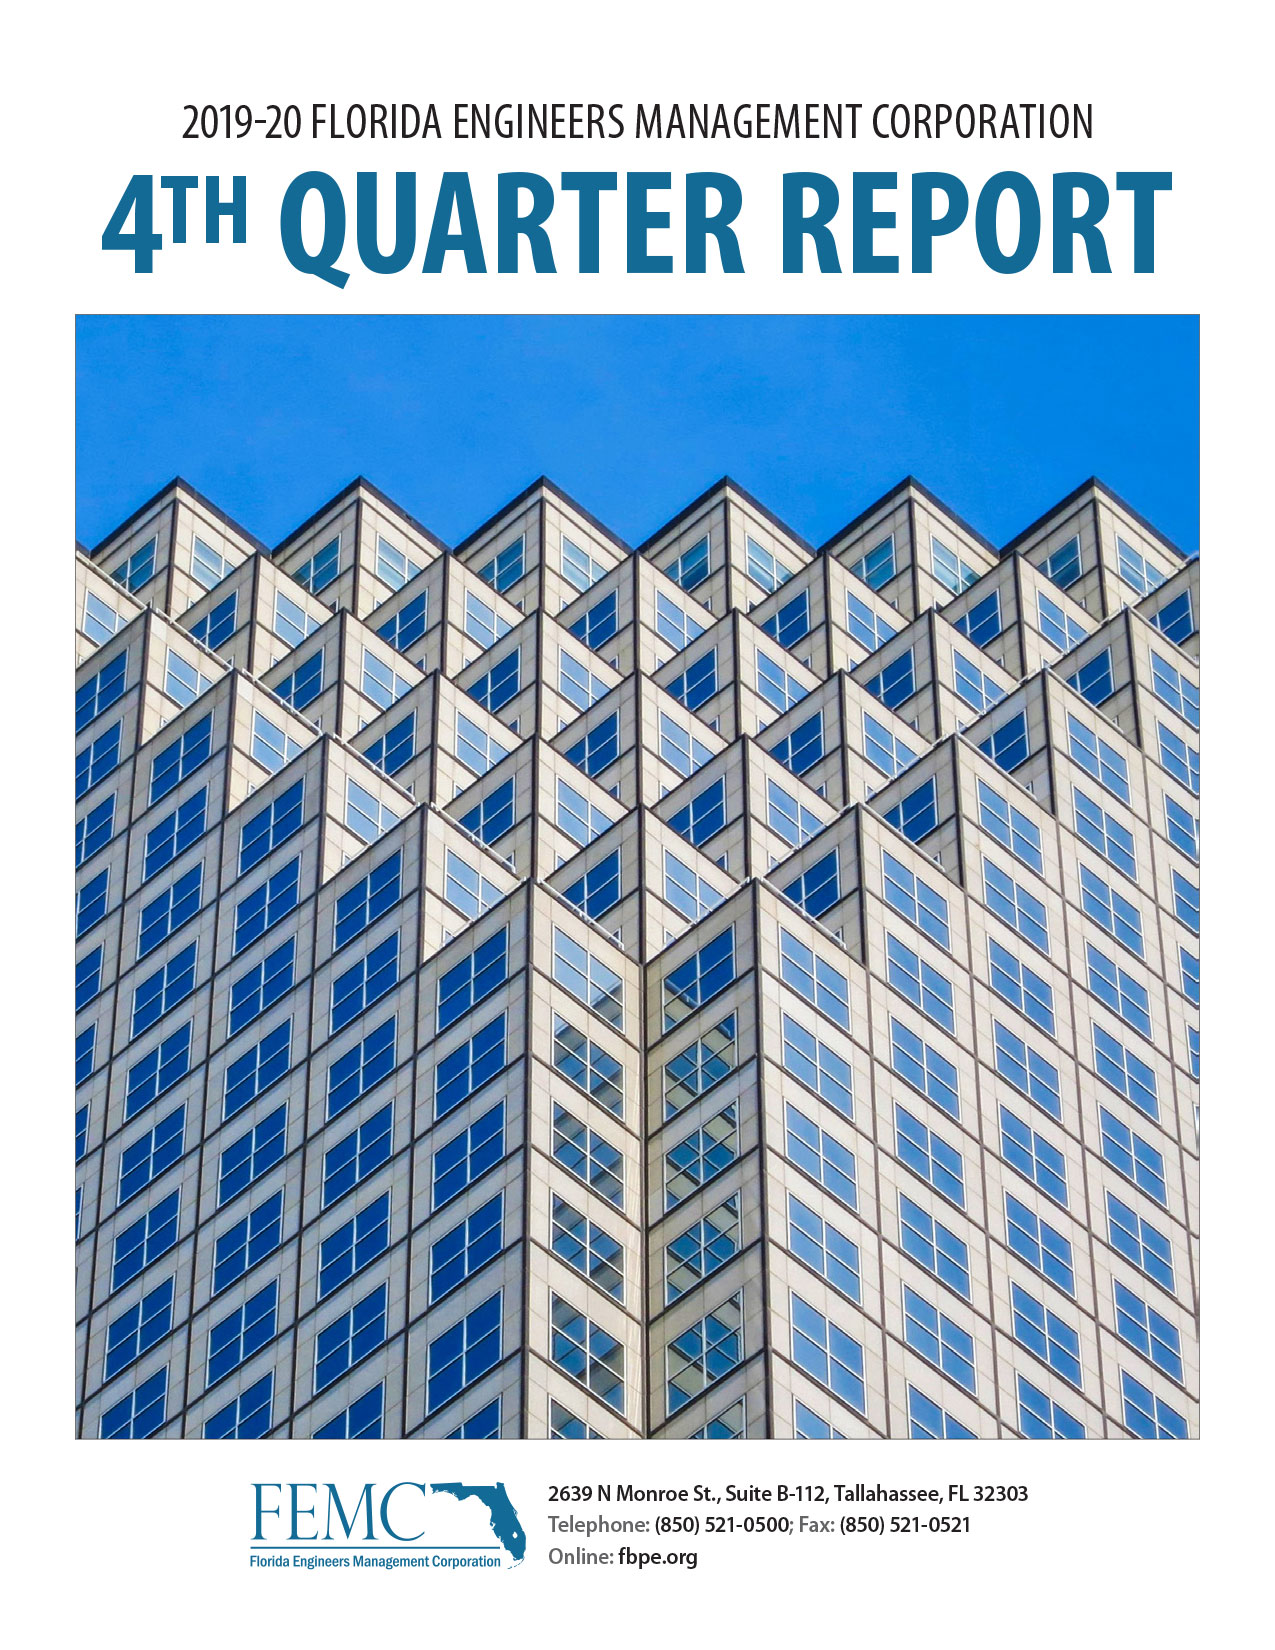 Cover of the 2019-20 Florida Engineers Management Corporation 4th Quarter Report